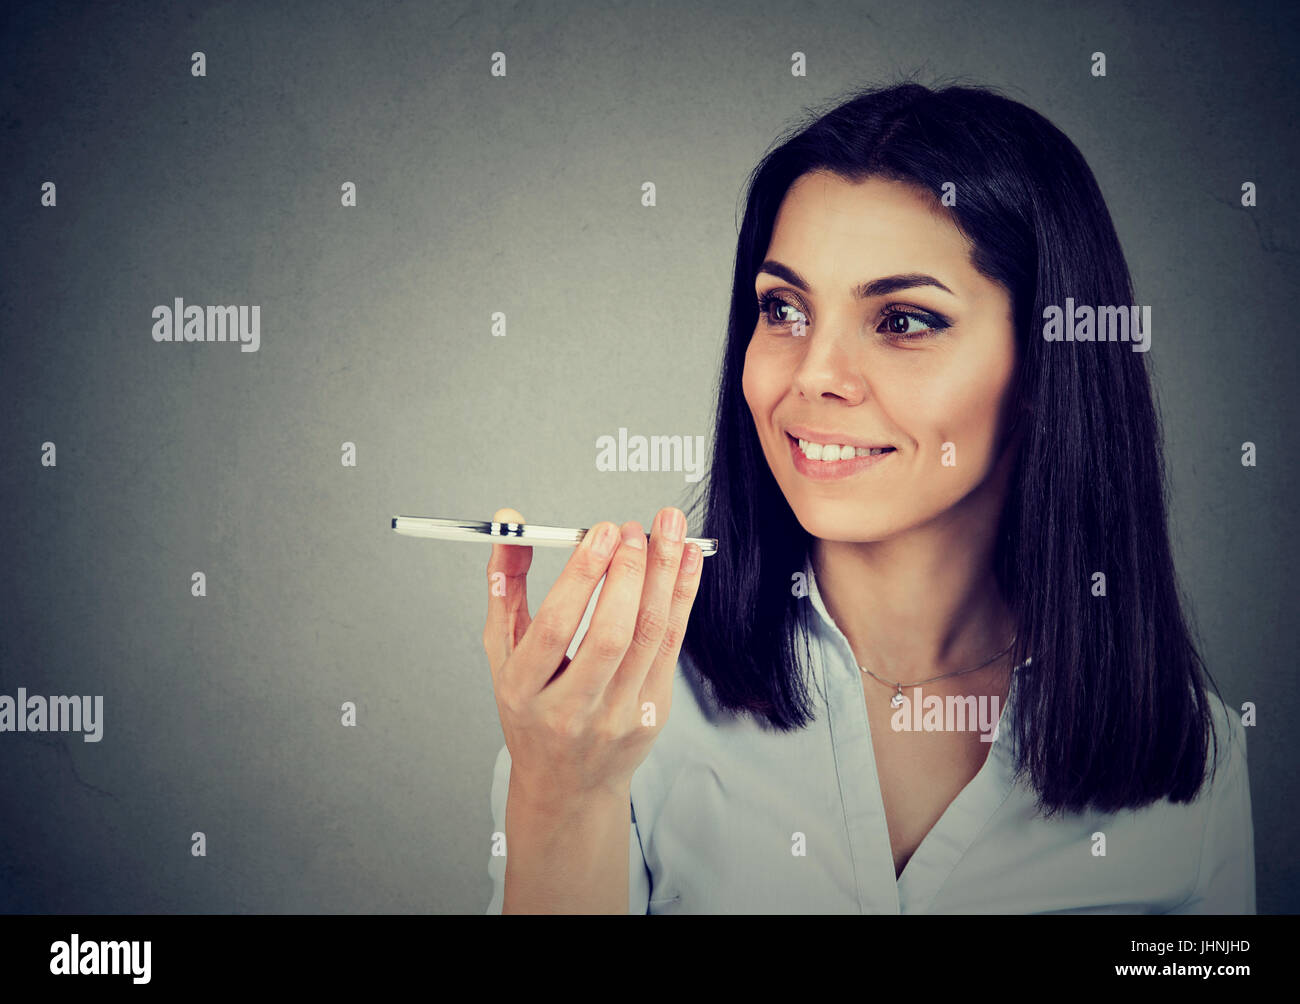 Girl using a smart phone voice recognition function on line isolated on gray wall background - Stock Image